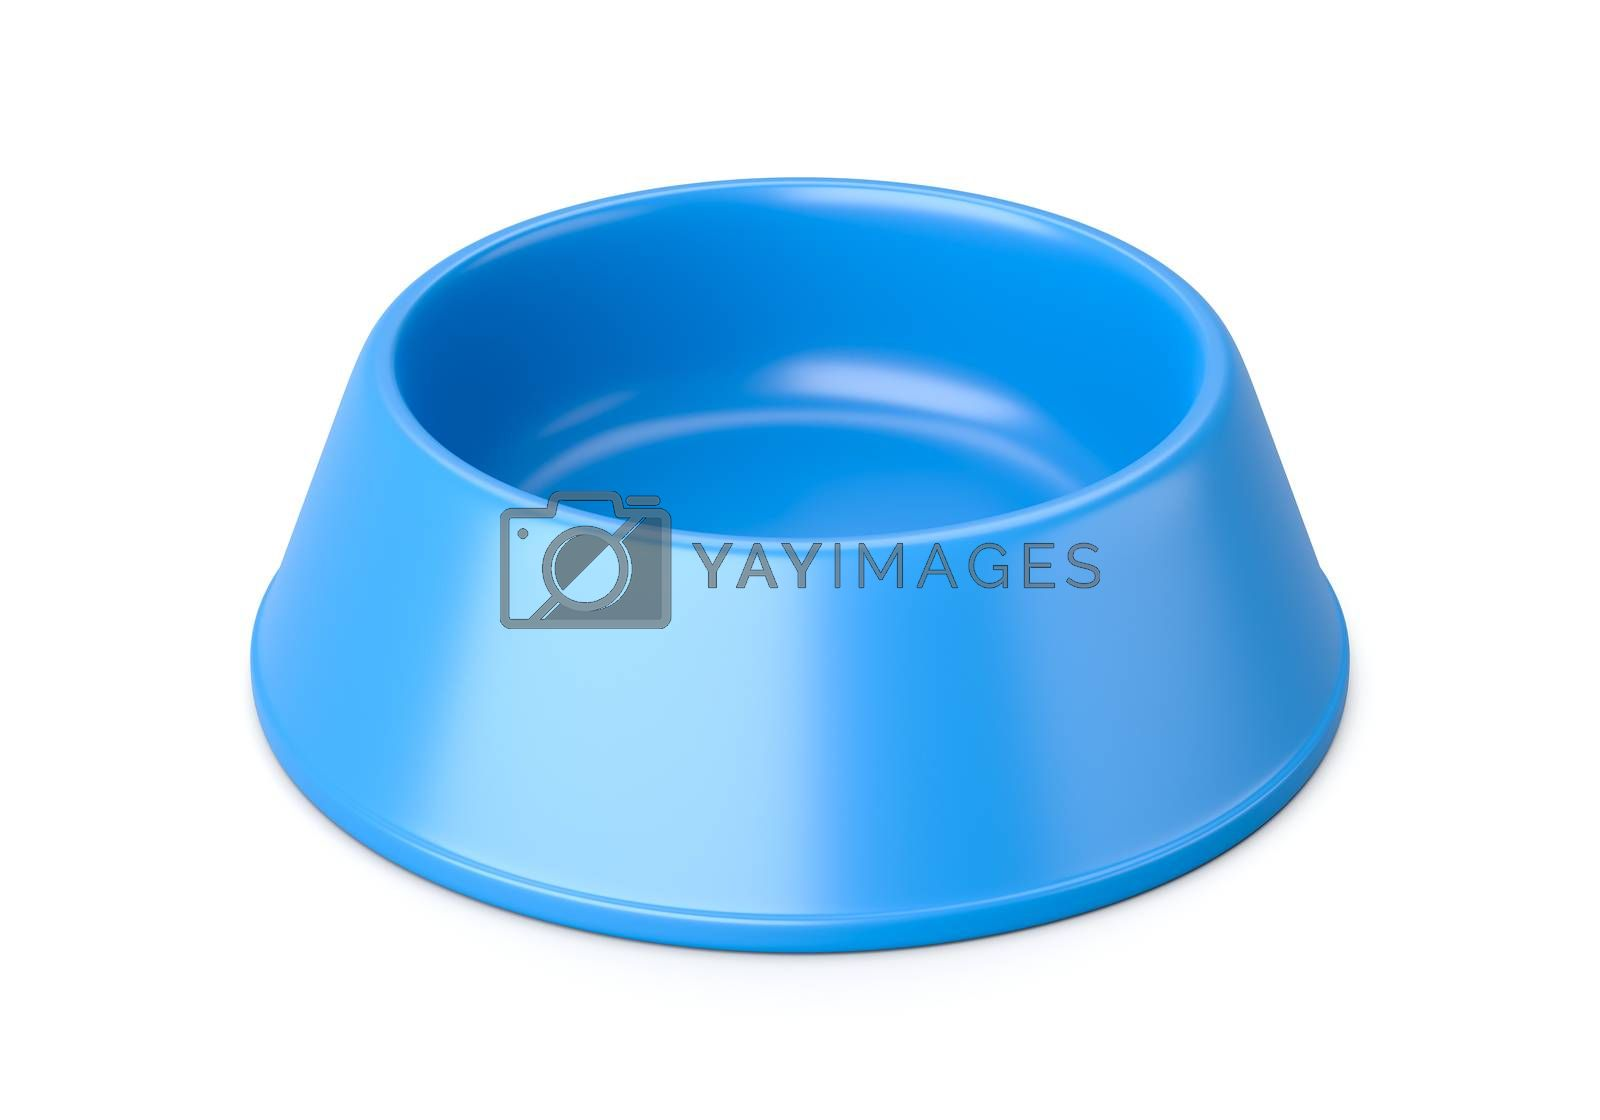 Empty Blue Plastic Pets Bowl Isolated on White Background 3D Illustration